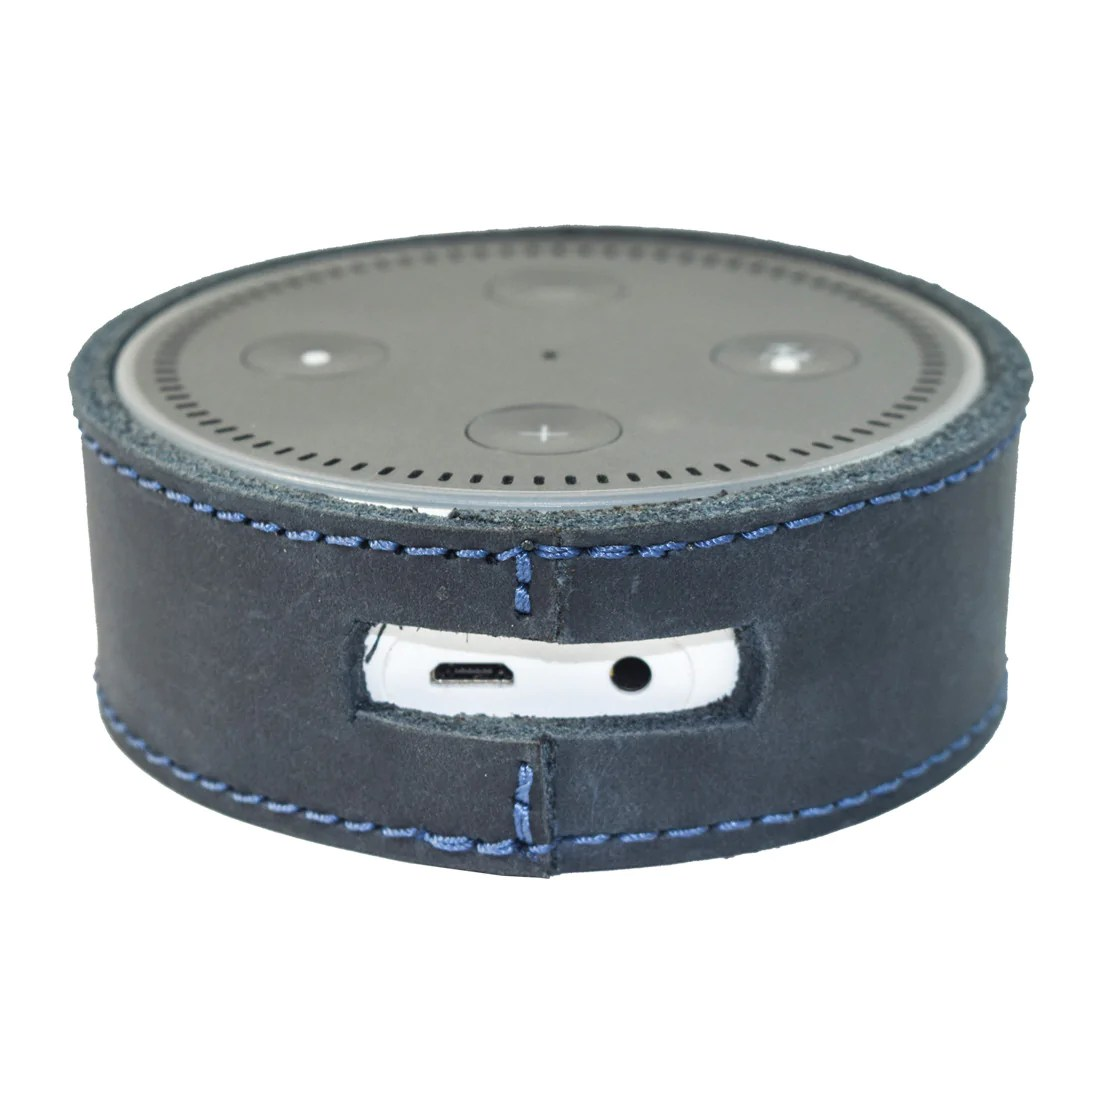 Alexa Dot Alexa Echo Dot 2nd Gen Case